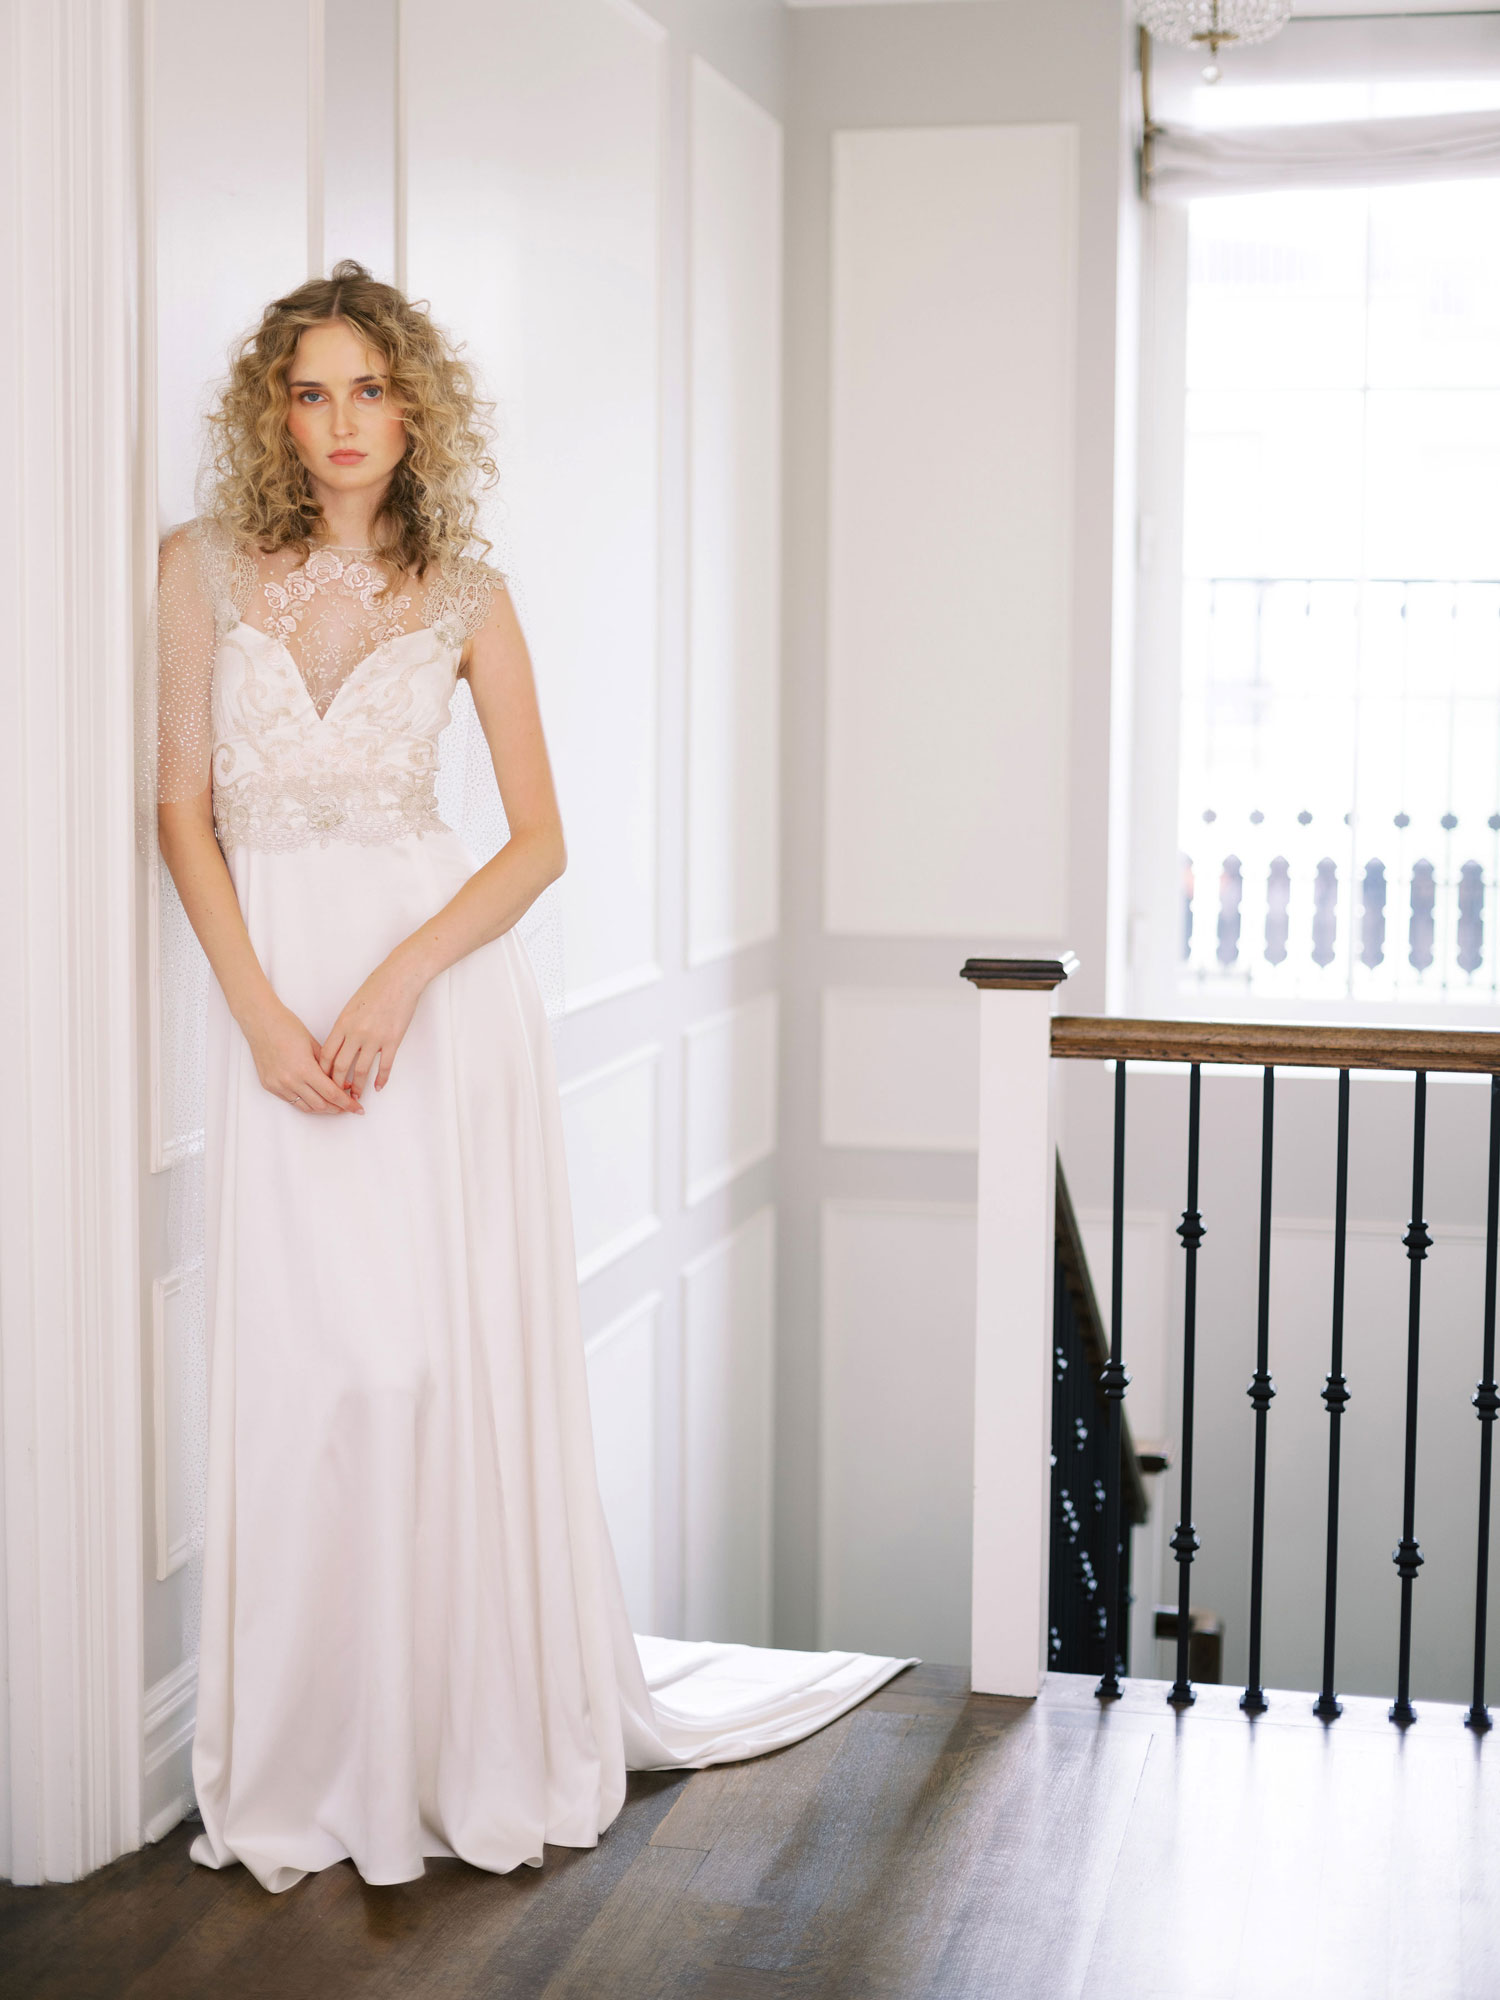 Claire Pettibone Evolution 2020 bridal collection Nera wedding dress